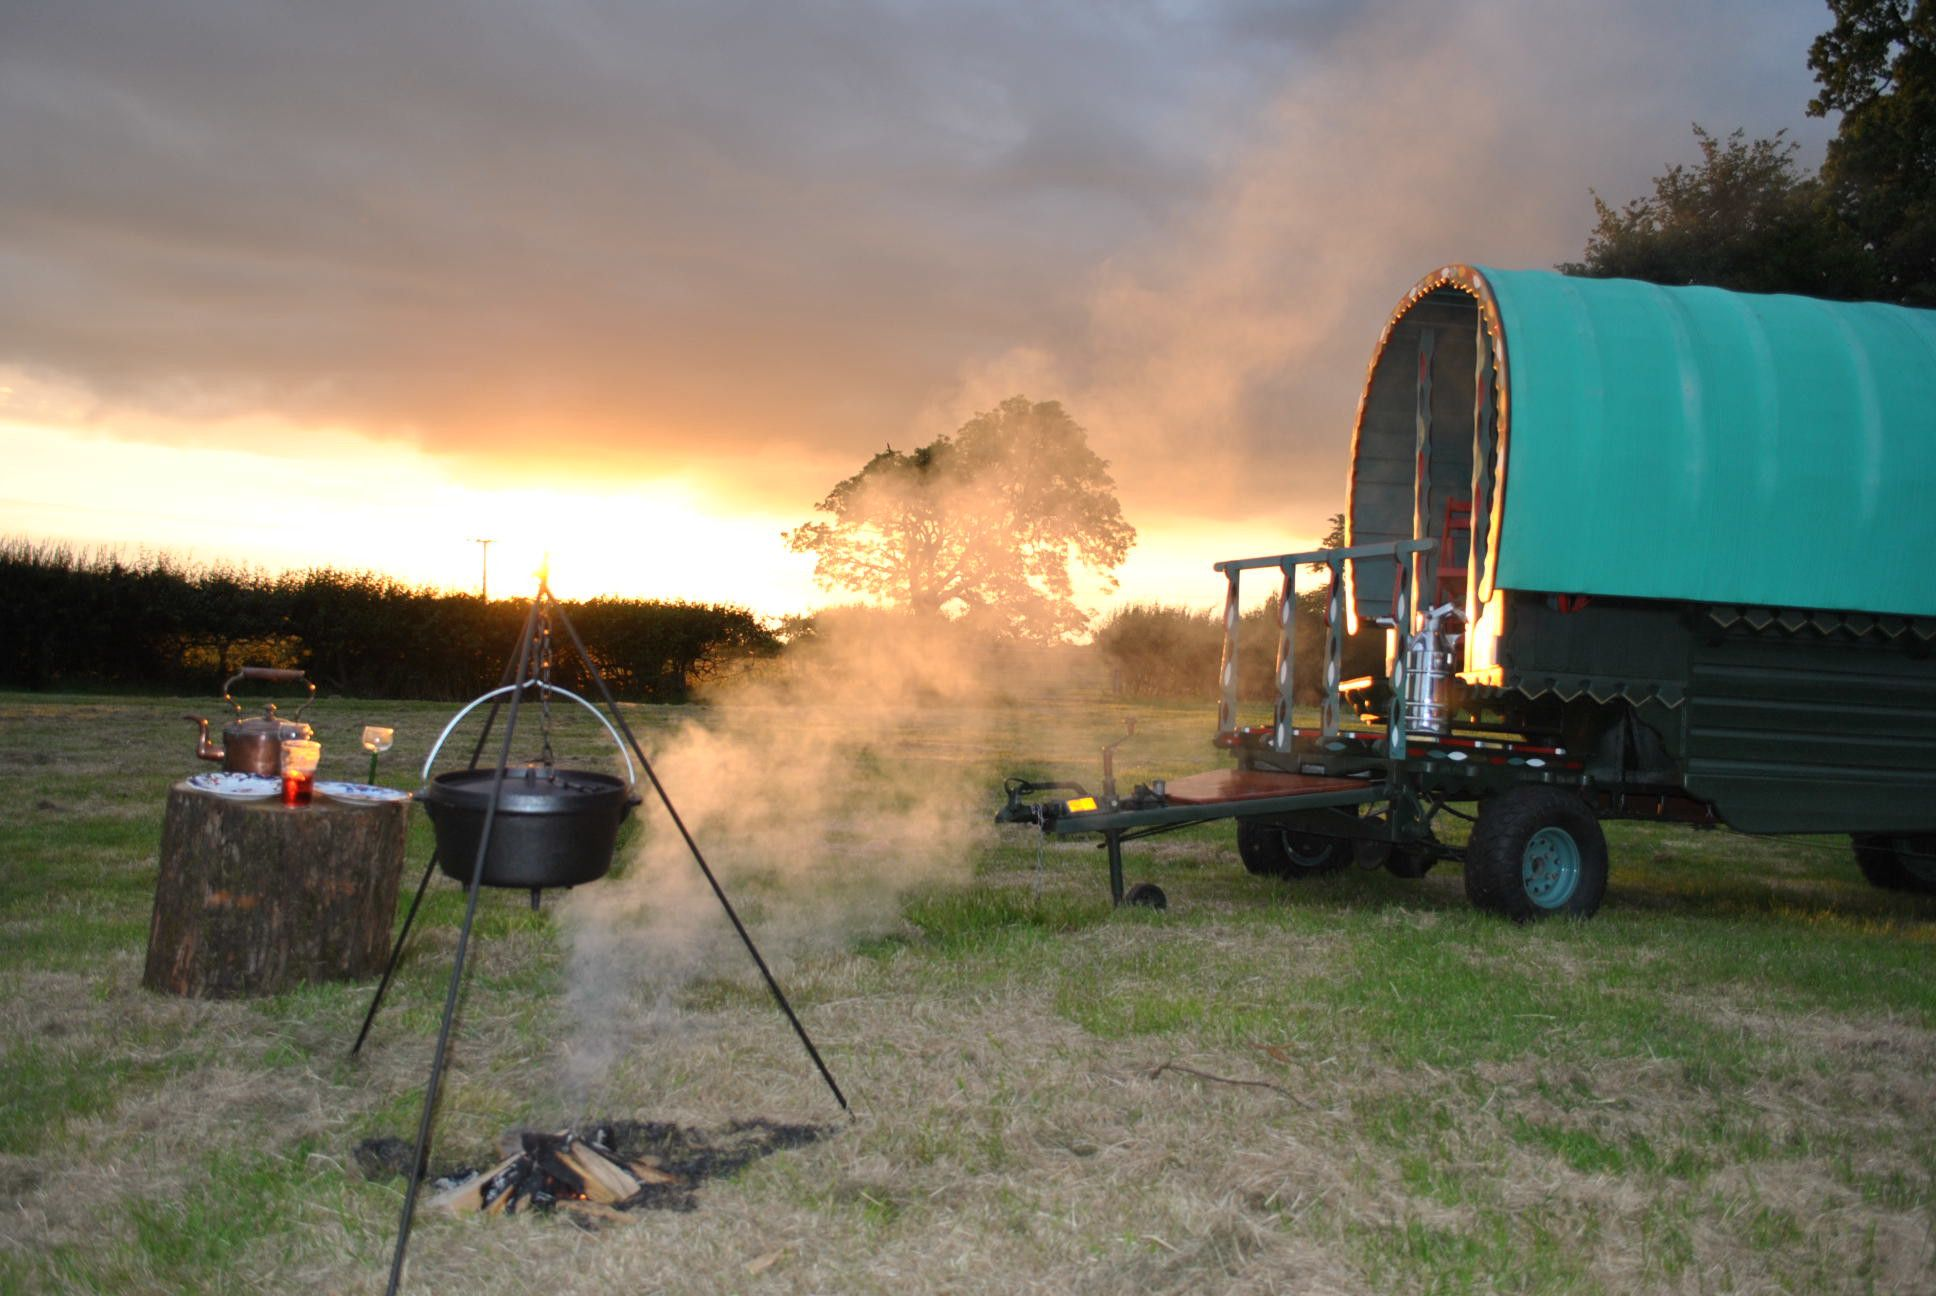 A clutch of different glamping options in the fields of Thorpe Lodge Farm in rural Oxfordshire.